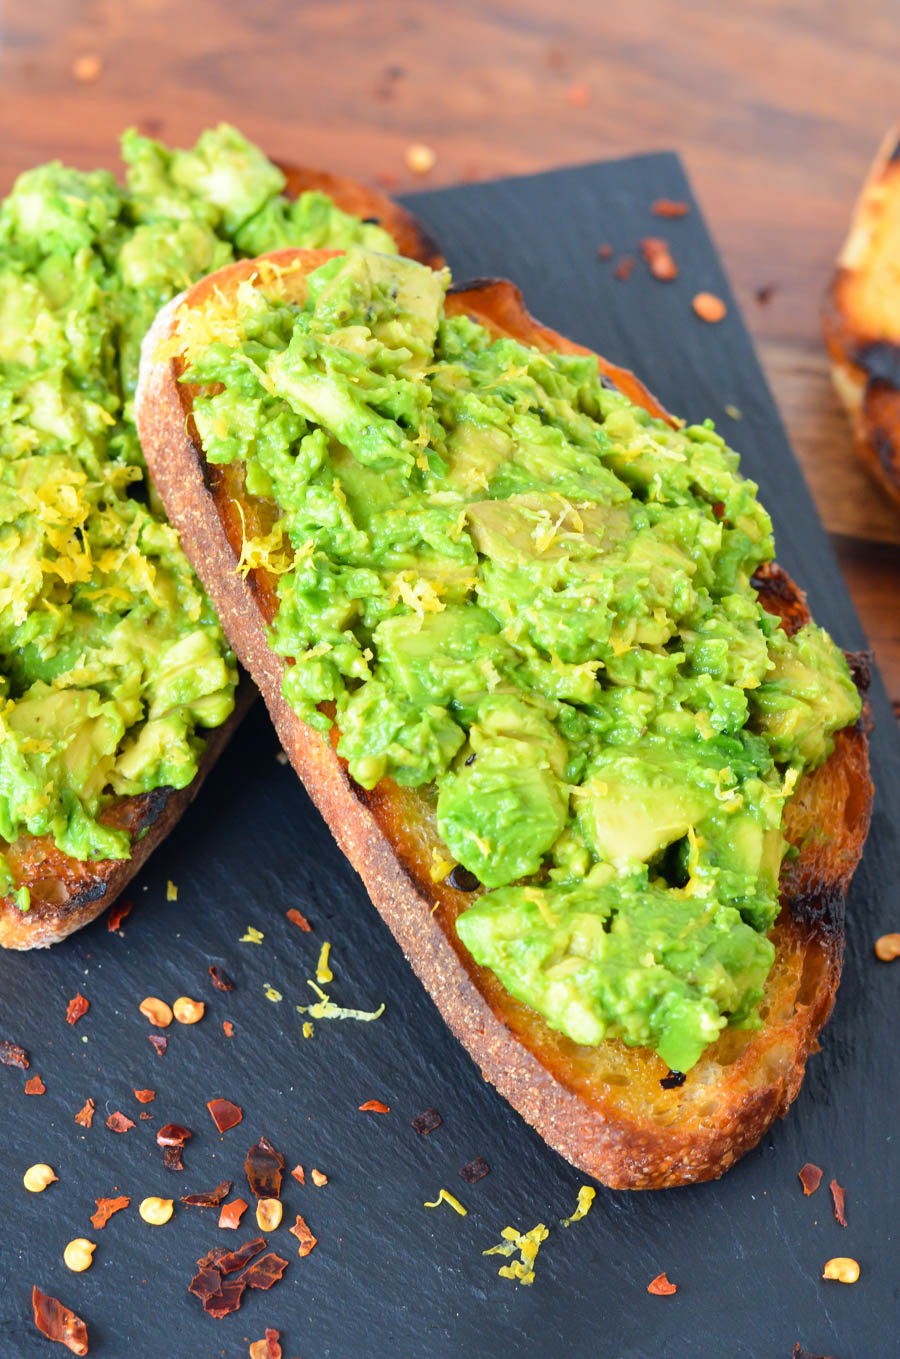 BBQ Grilled Avocado Toast - Avocado on Spicy Grilled Bread